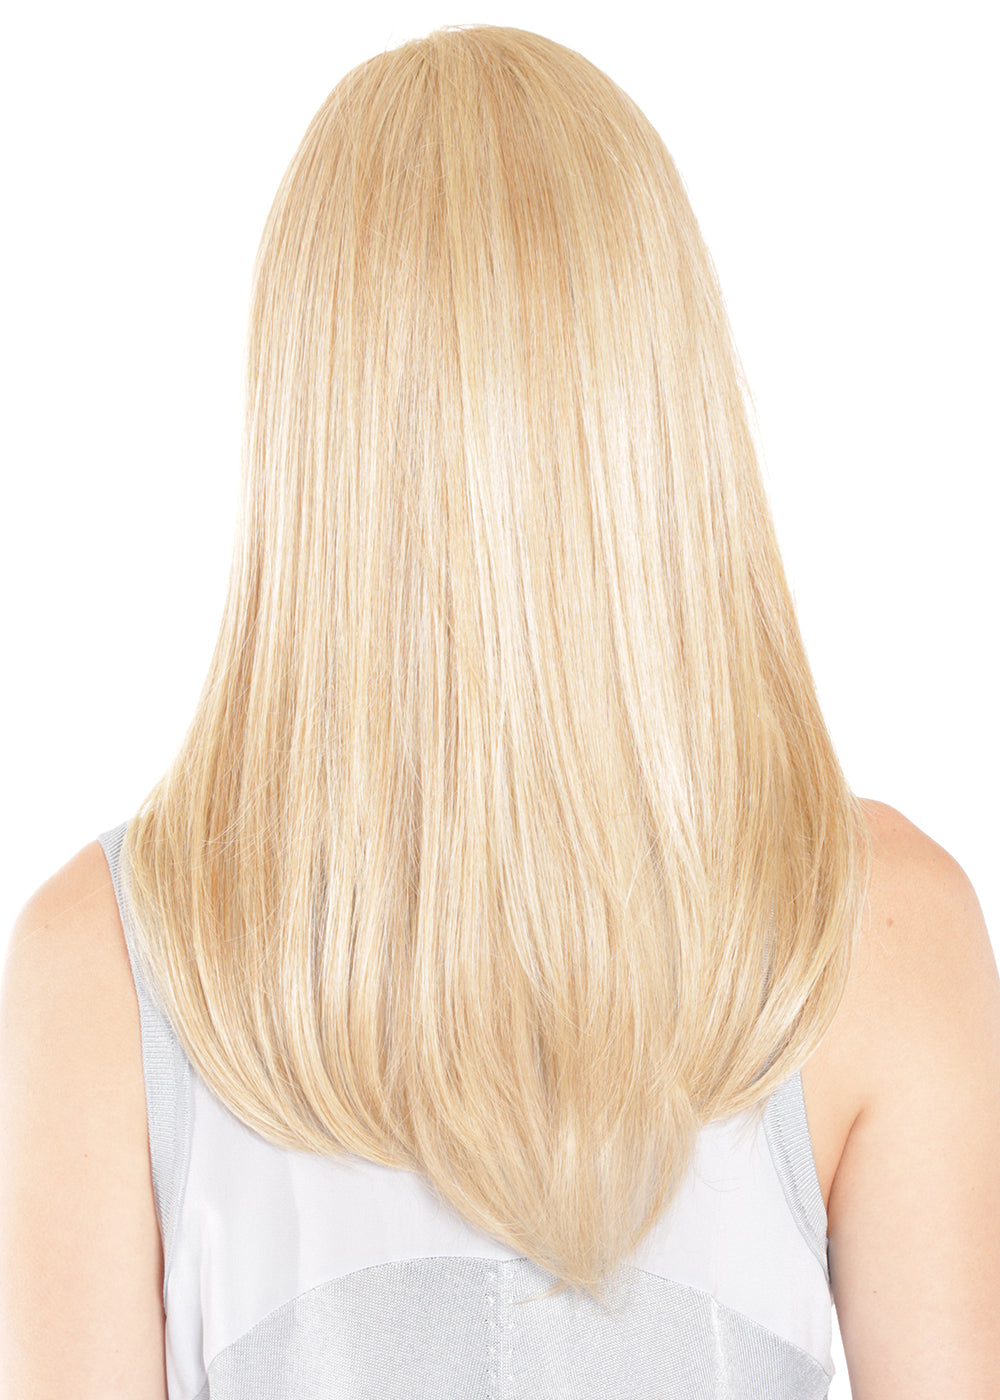 LaceFront Mono Top Straight 18